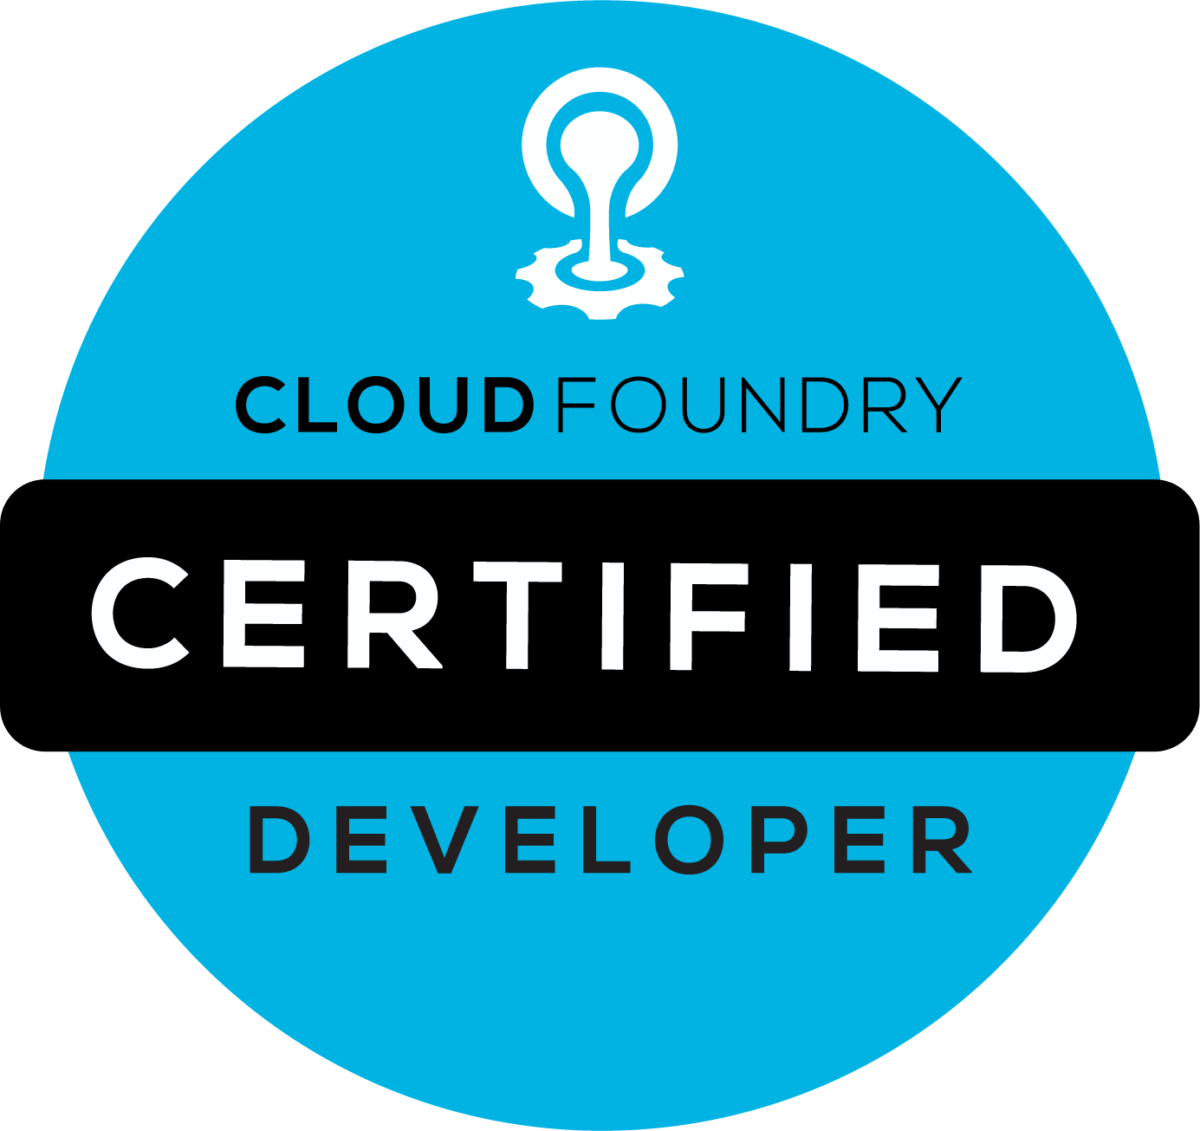 Cloud Foundry Certified Developer logo